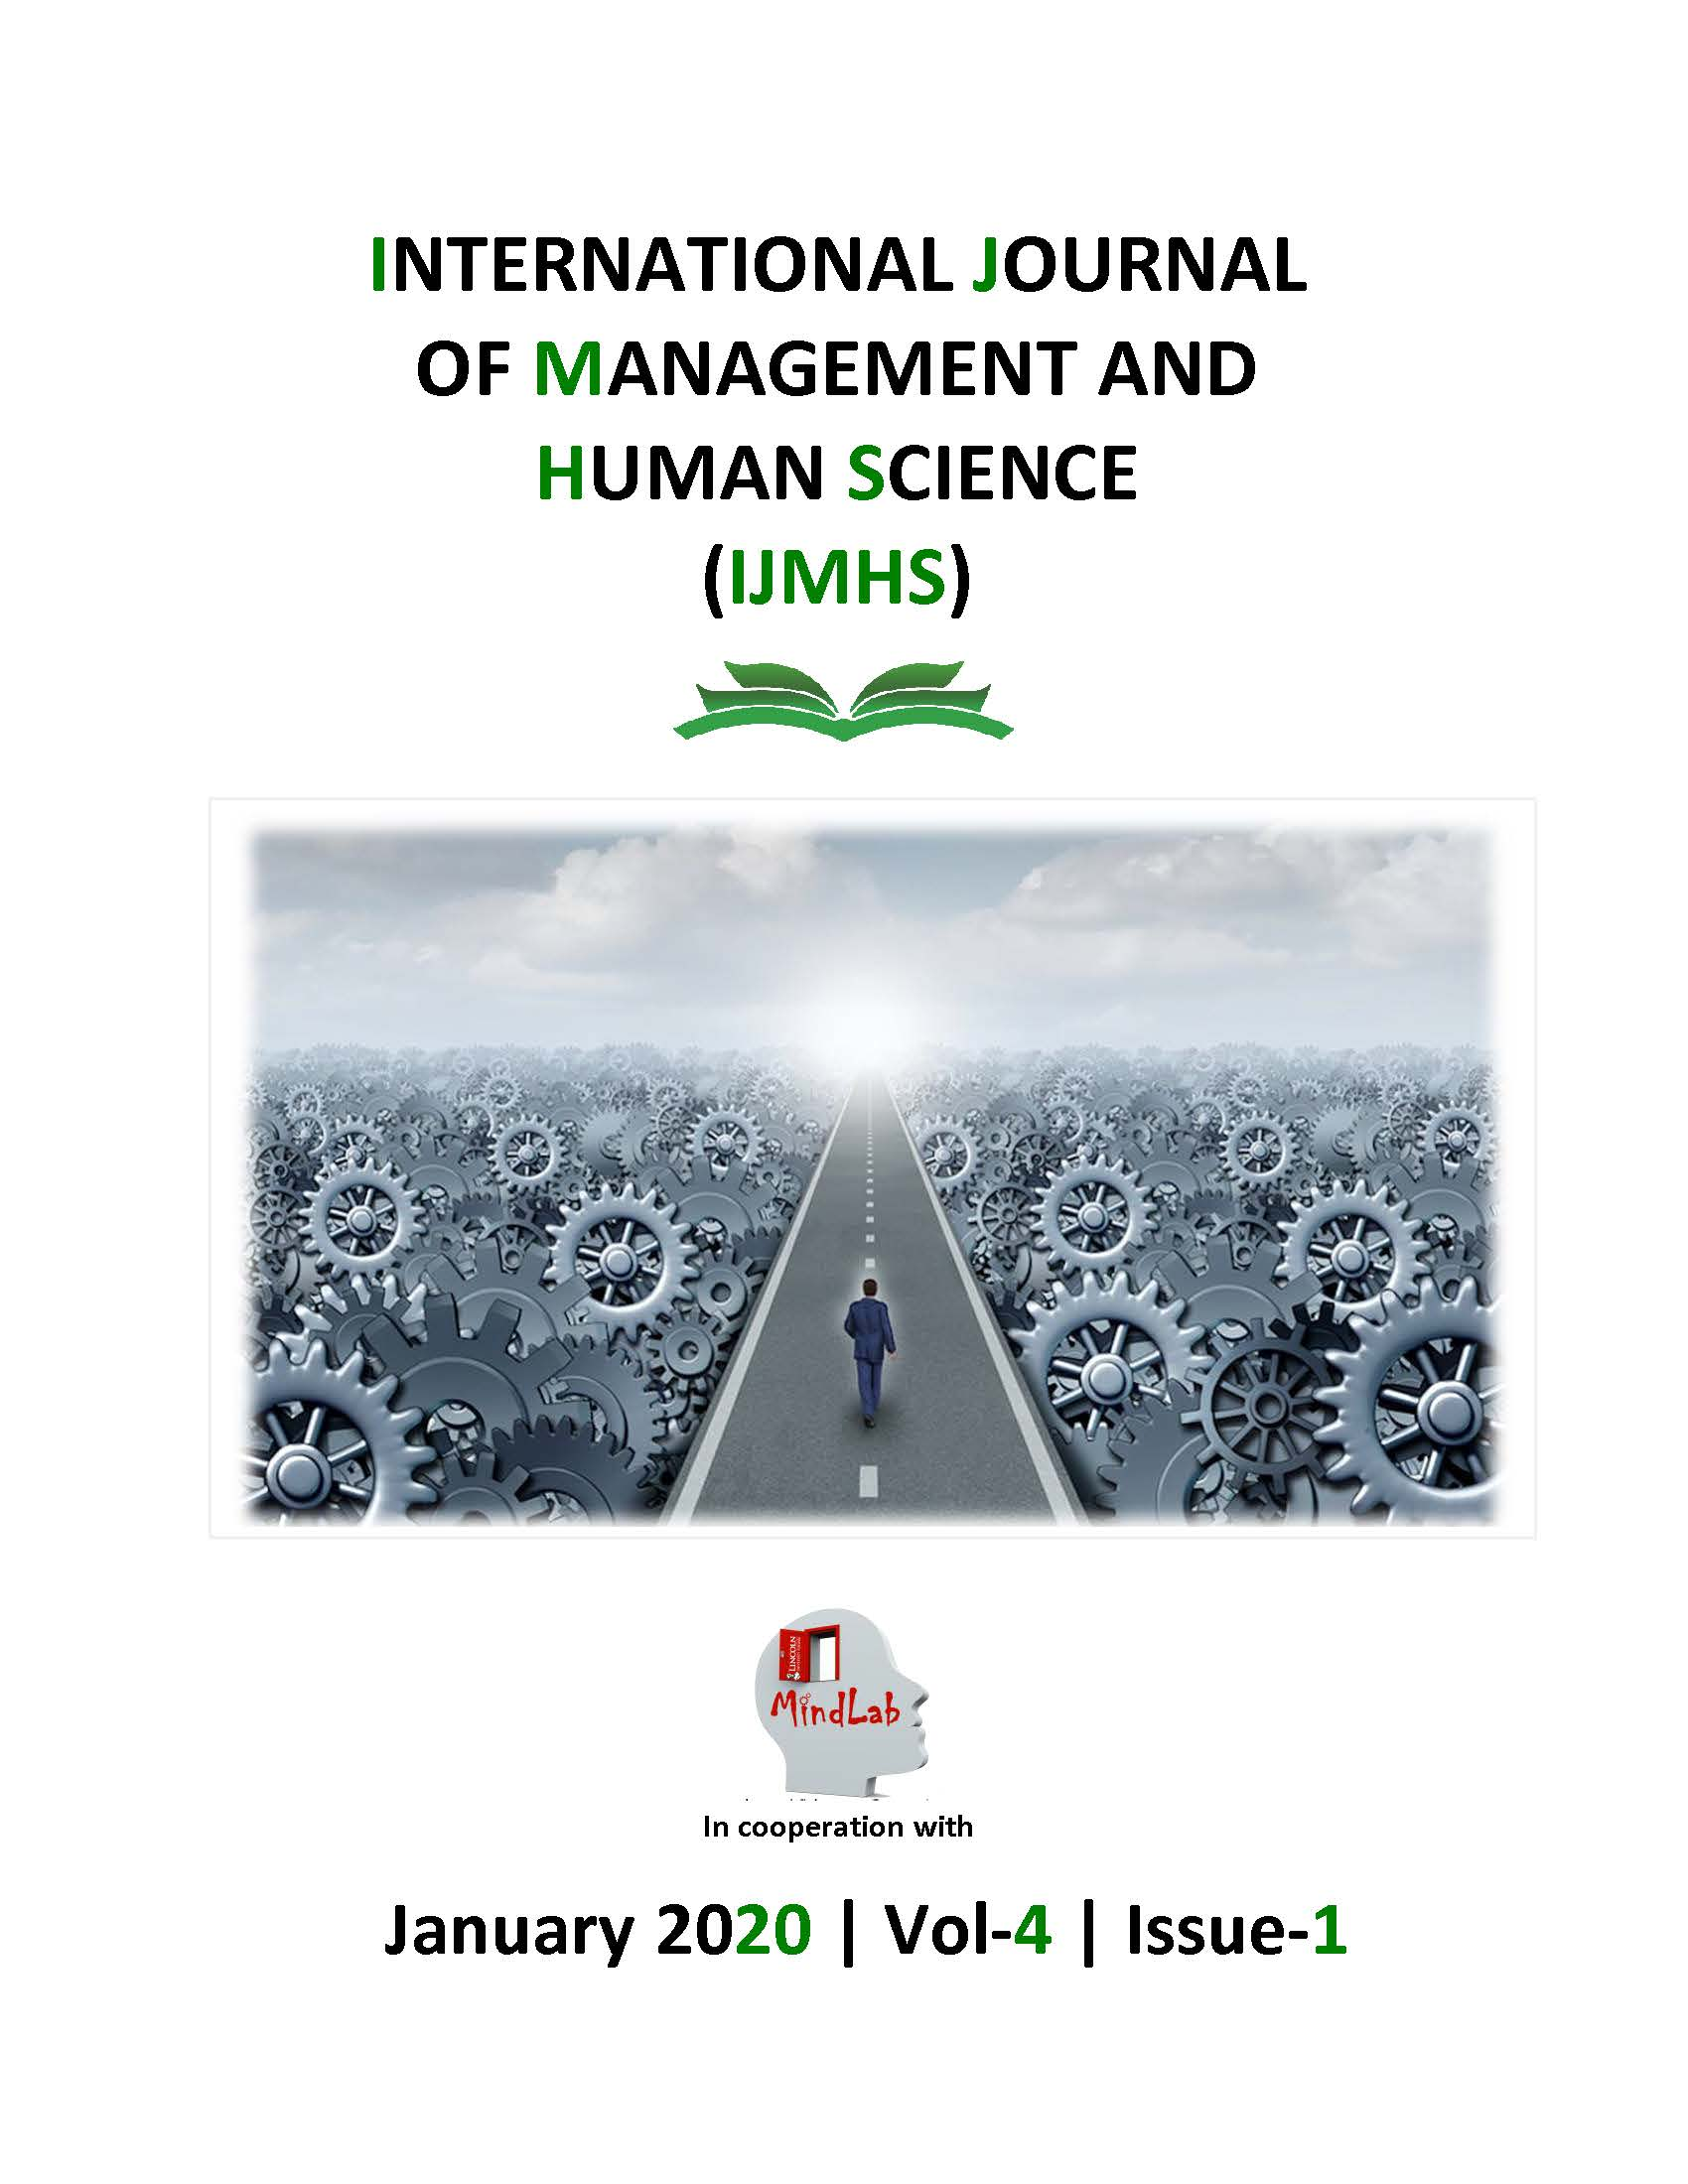 View Vol. 4 No. 1 (2020): International Journal of Management and Human Science (IJMHS)